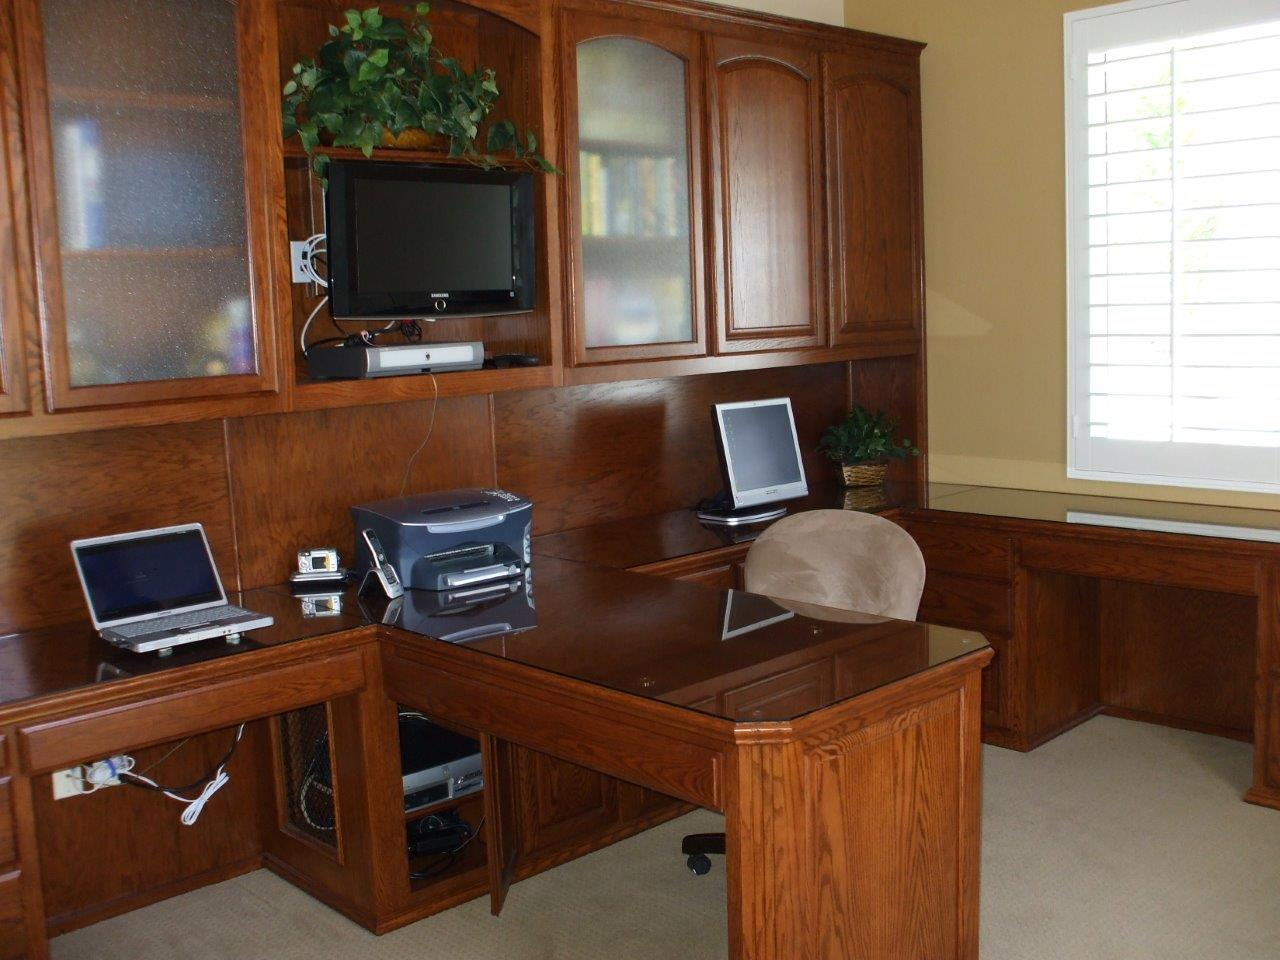 Delicieux Custom Home Office Furniture Can Provide Maximum Storage And Organization